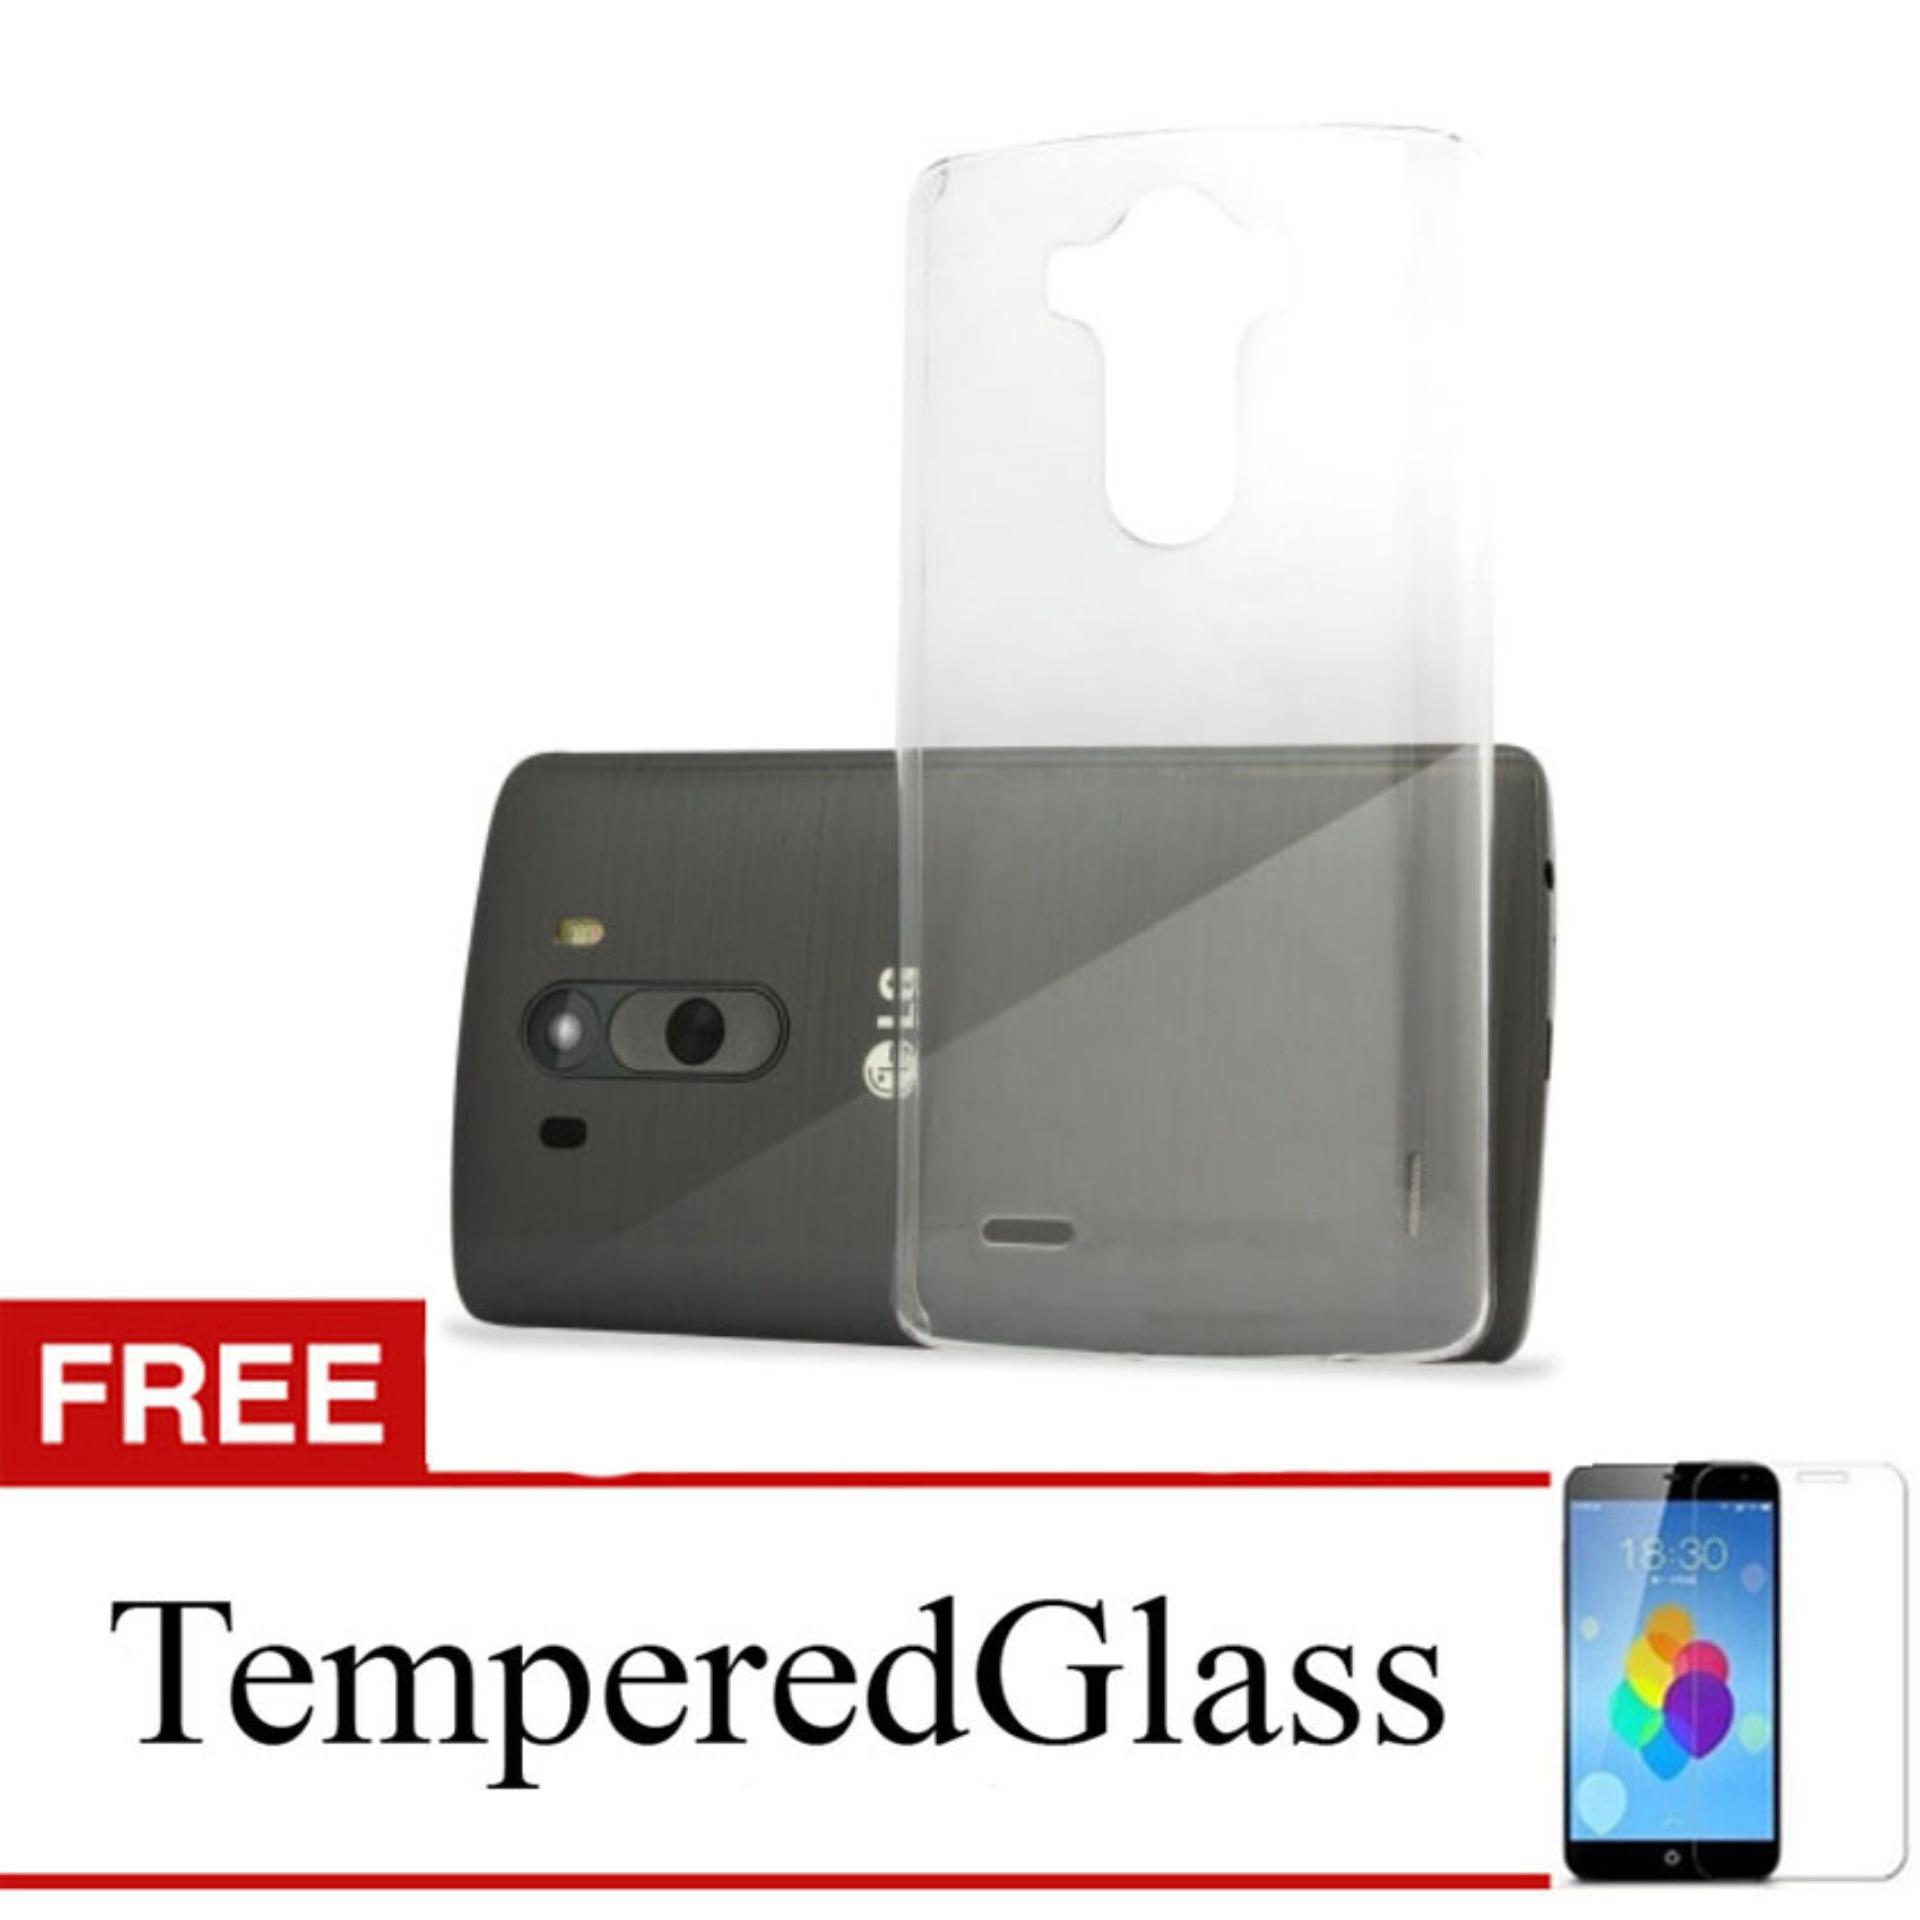 Case for LG V10 - Clear + Gratis Tempered Glass - Ultra Thin Soft Case